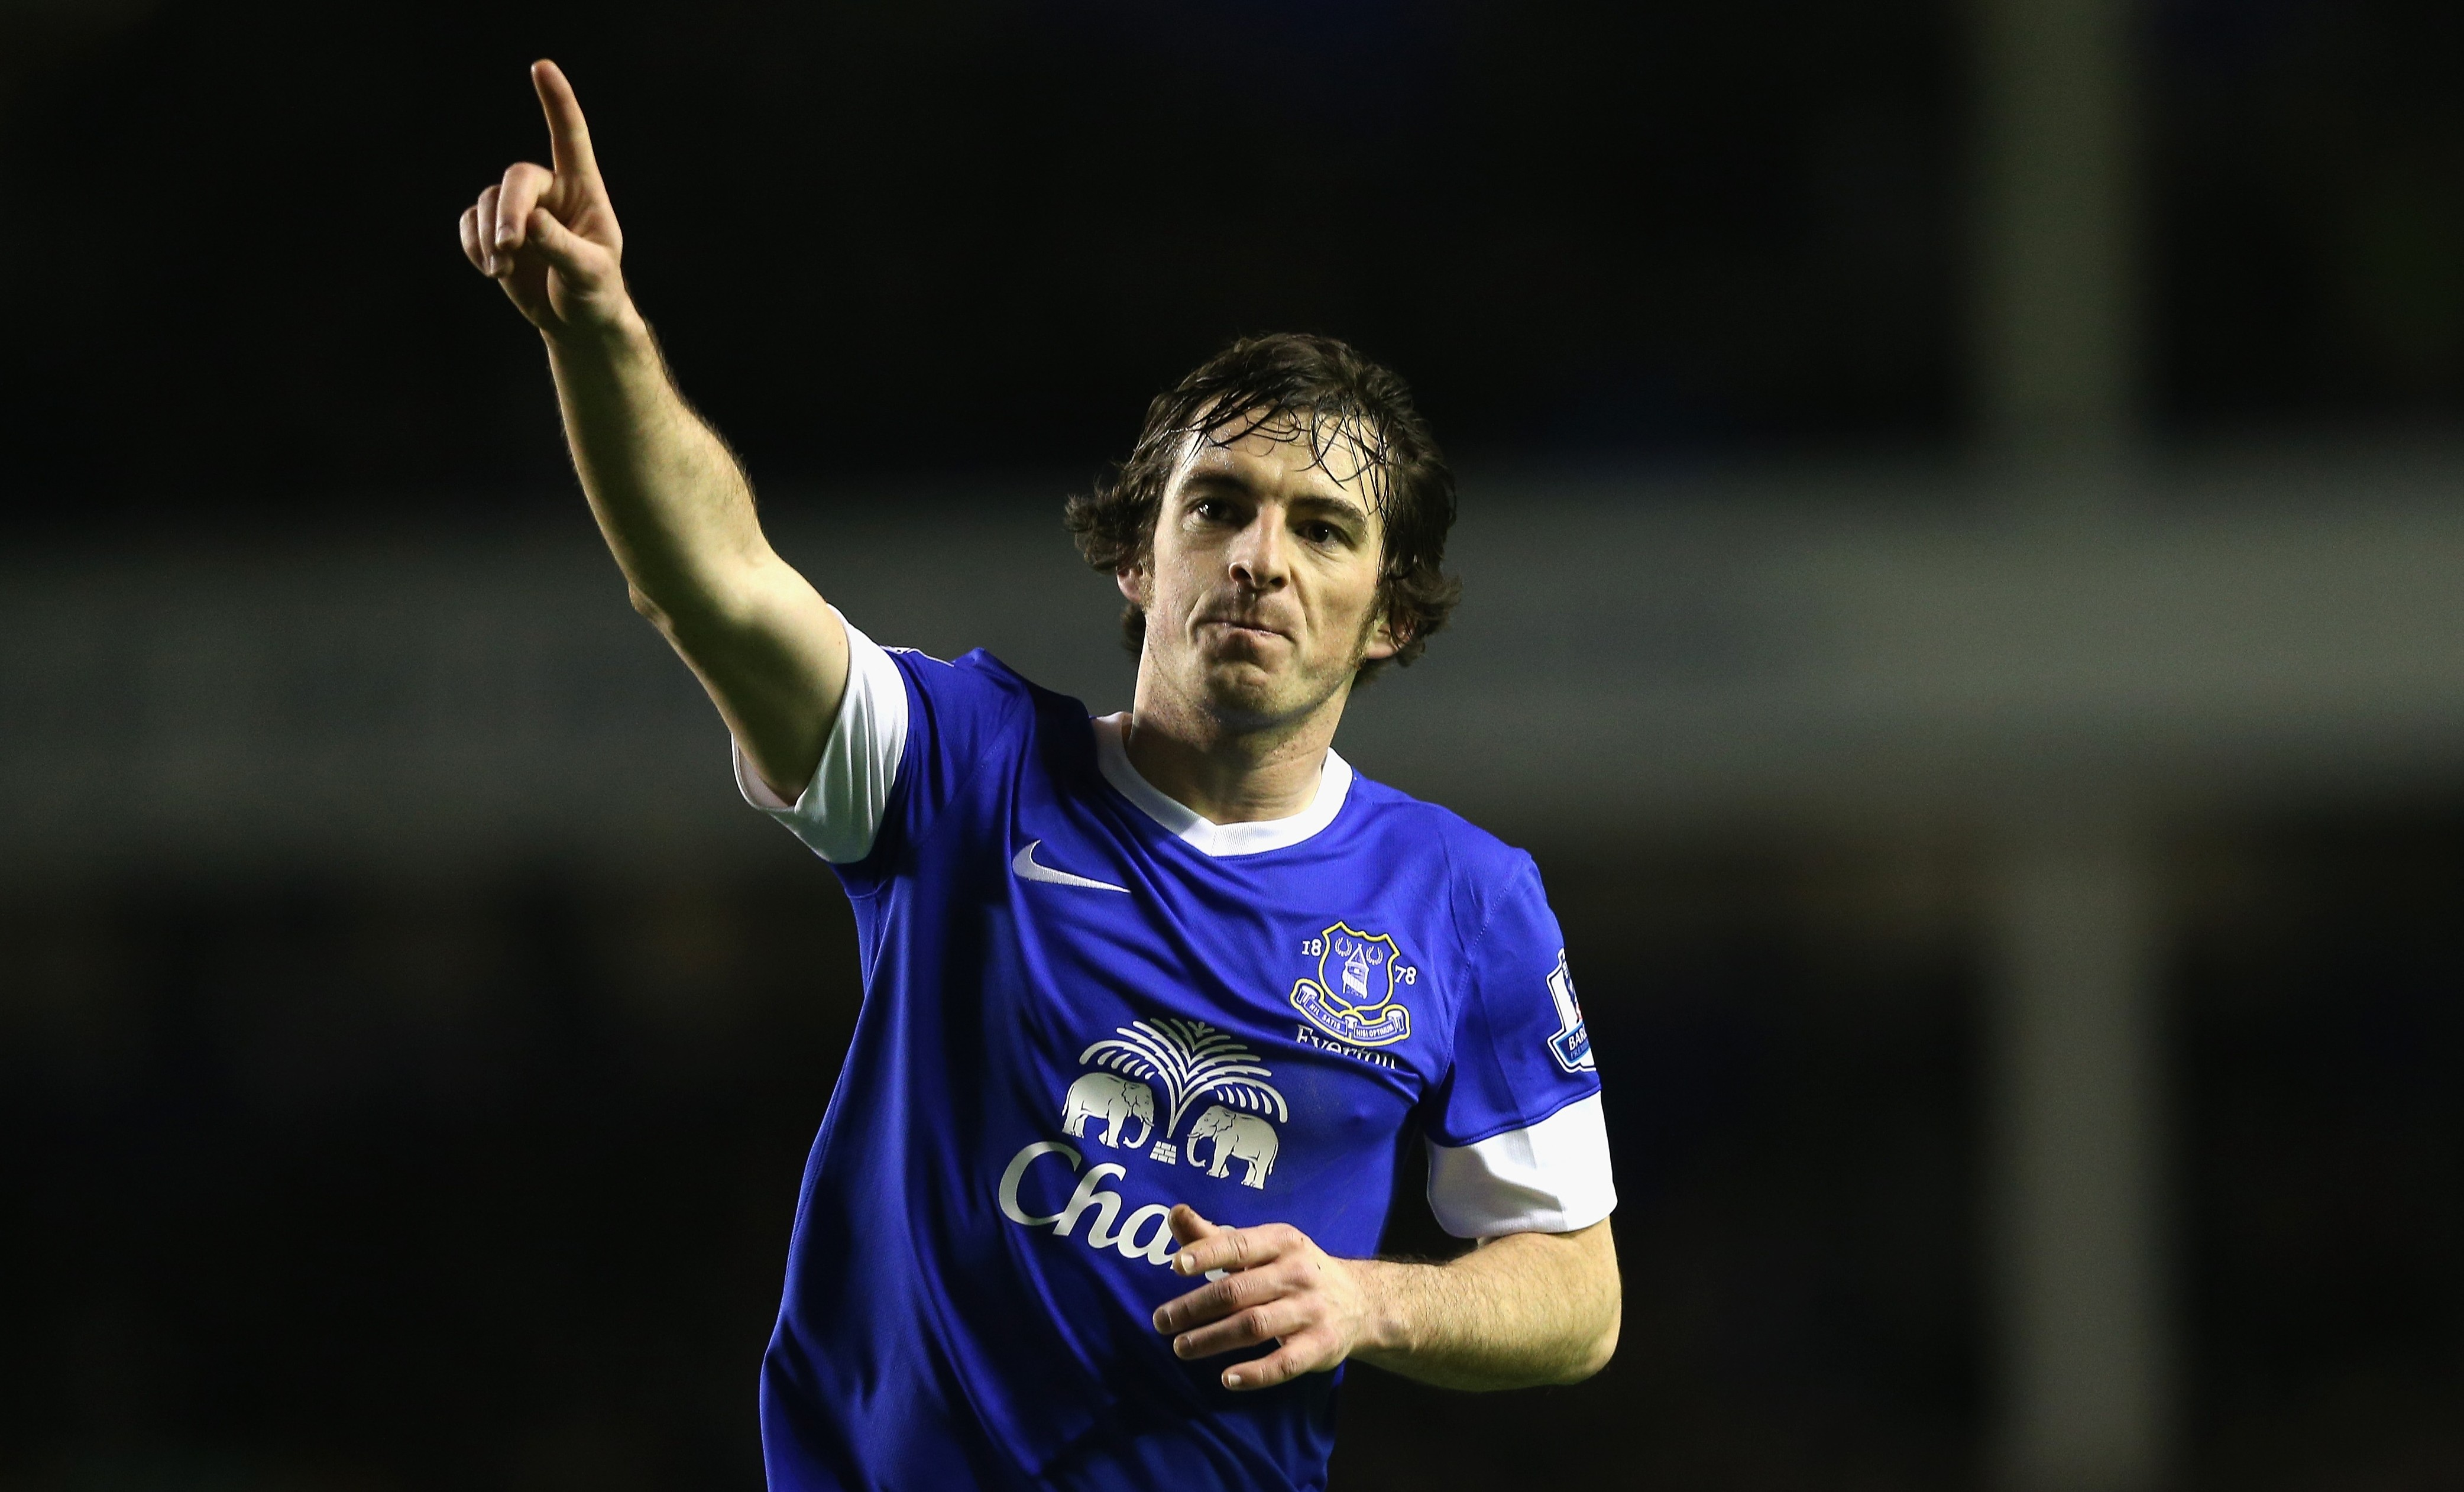 In form: Baines has been excellent for Everton this season (Picture: Getty)